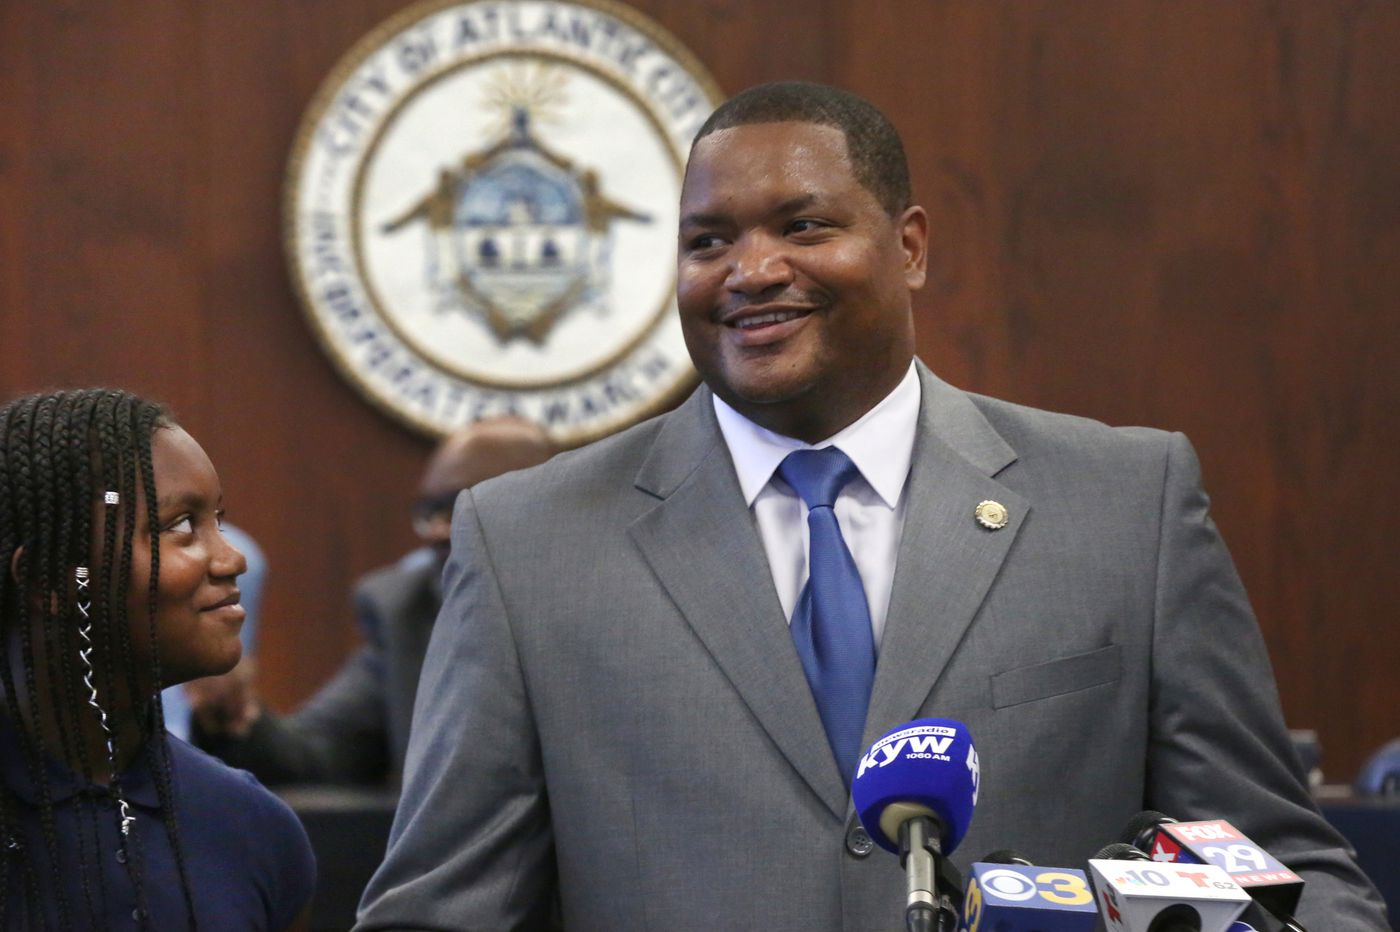 Atlantic City gets a new mayor after another one is disgraced. Will it matter?